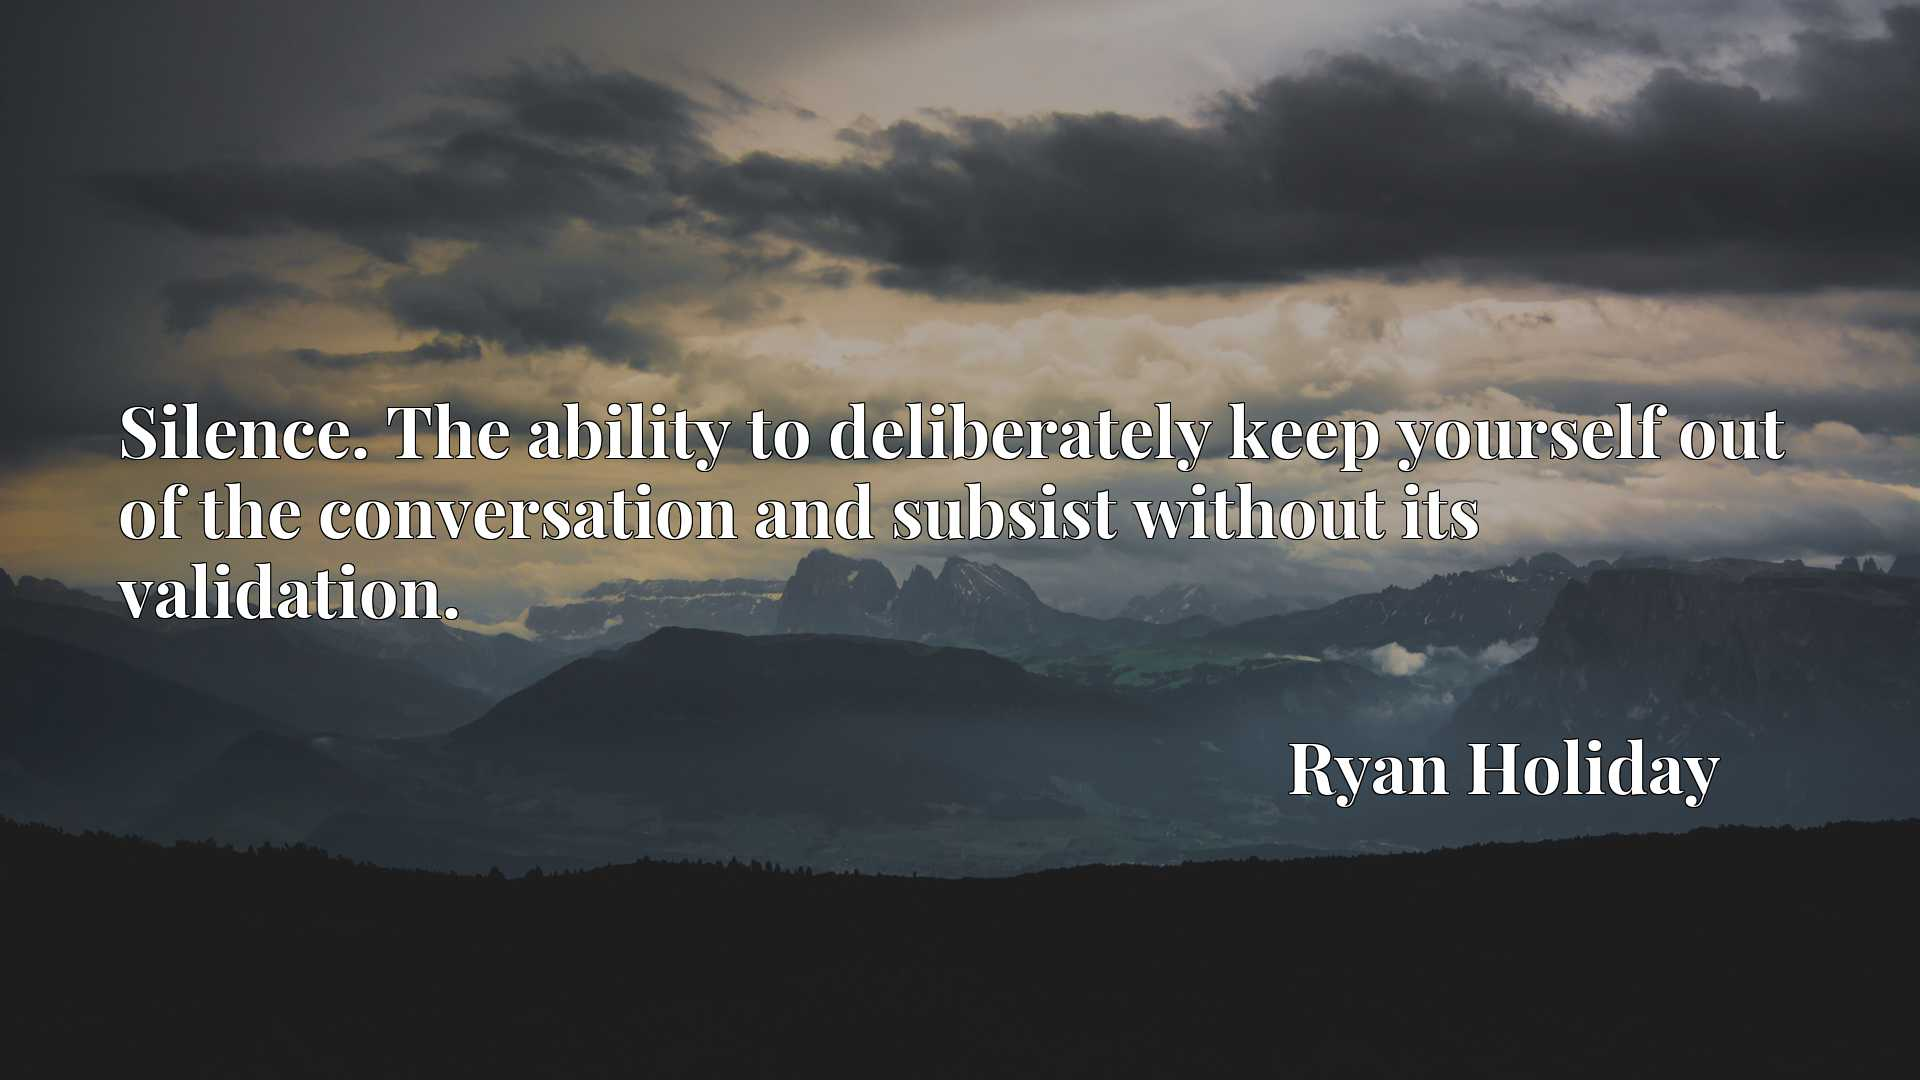 Silence. The ability to deliberately keep yourself out of the conversation and subsist without its validation.